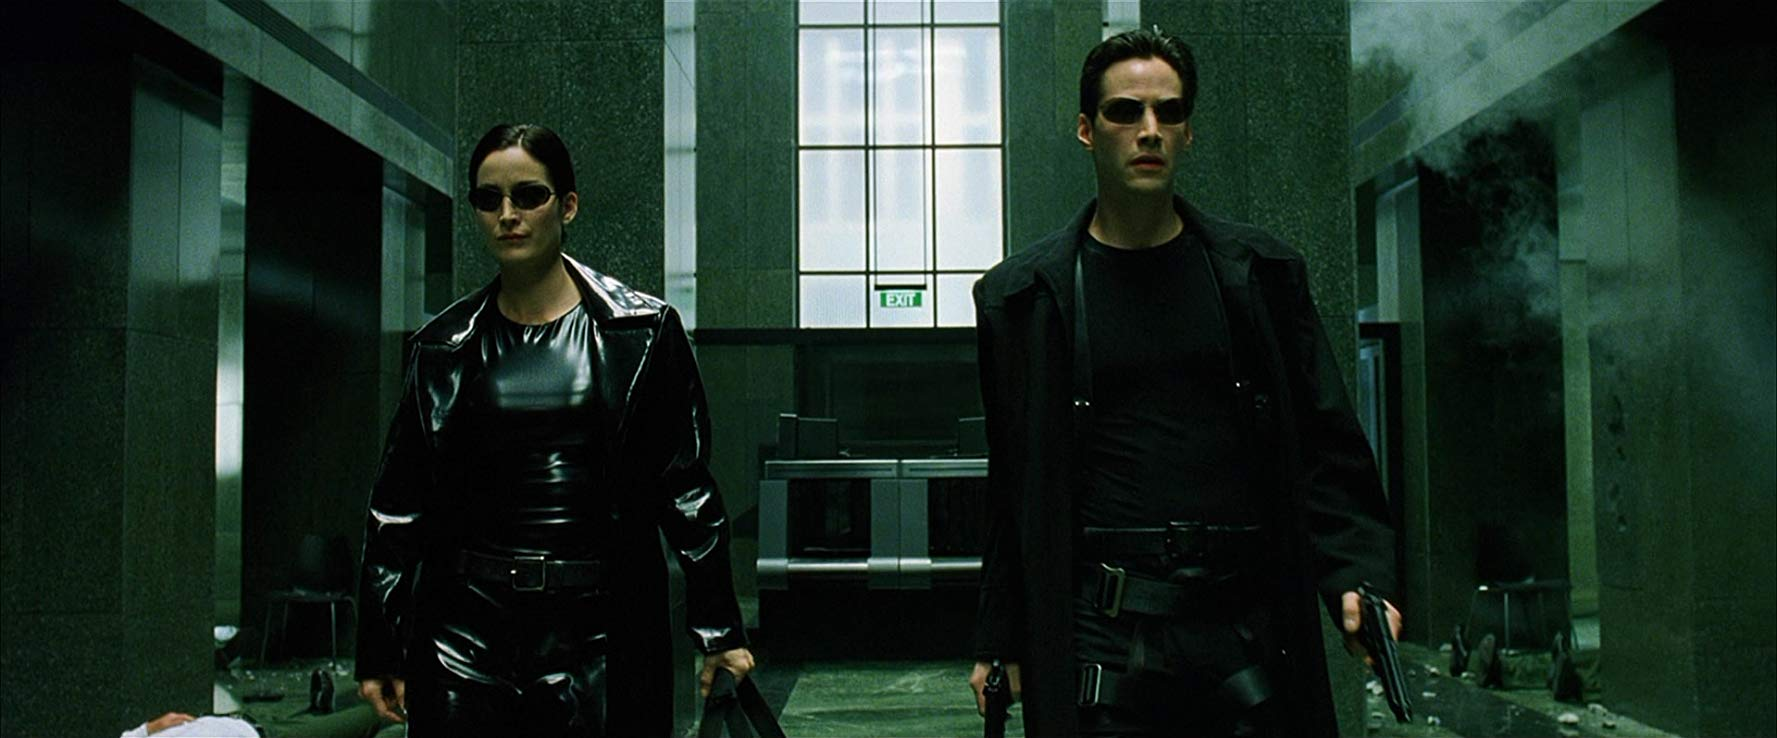 No, the Wachowskis Are Still Not Involved With 'The Matrix' Reboot [Updated]